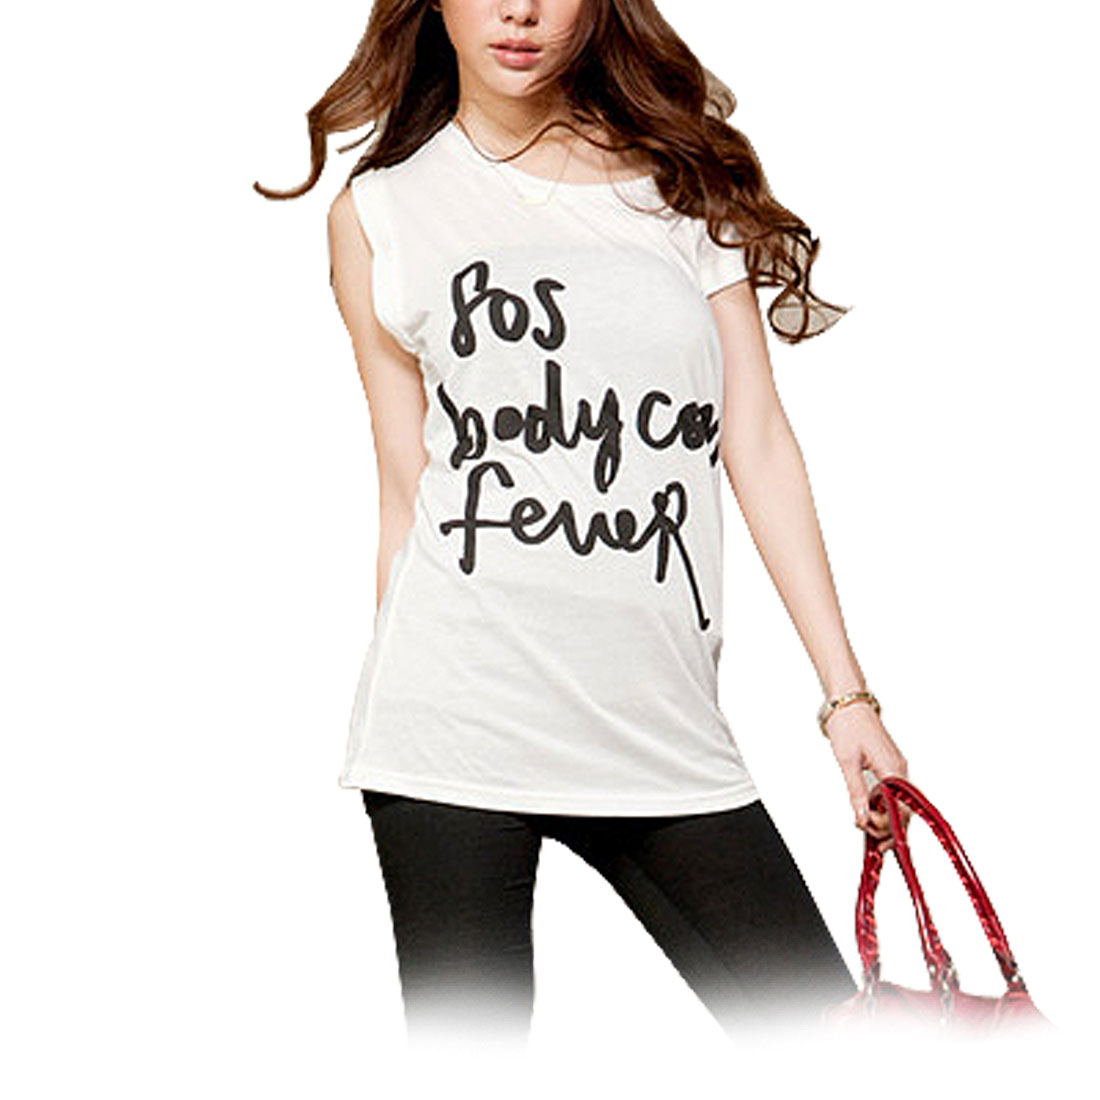 Ladies White Round Neck Sleeveless Scribbled T Shirt S